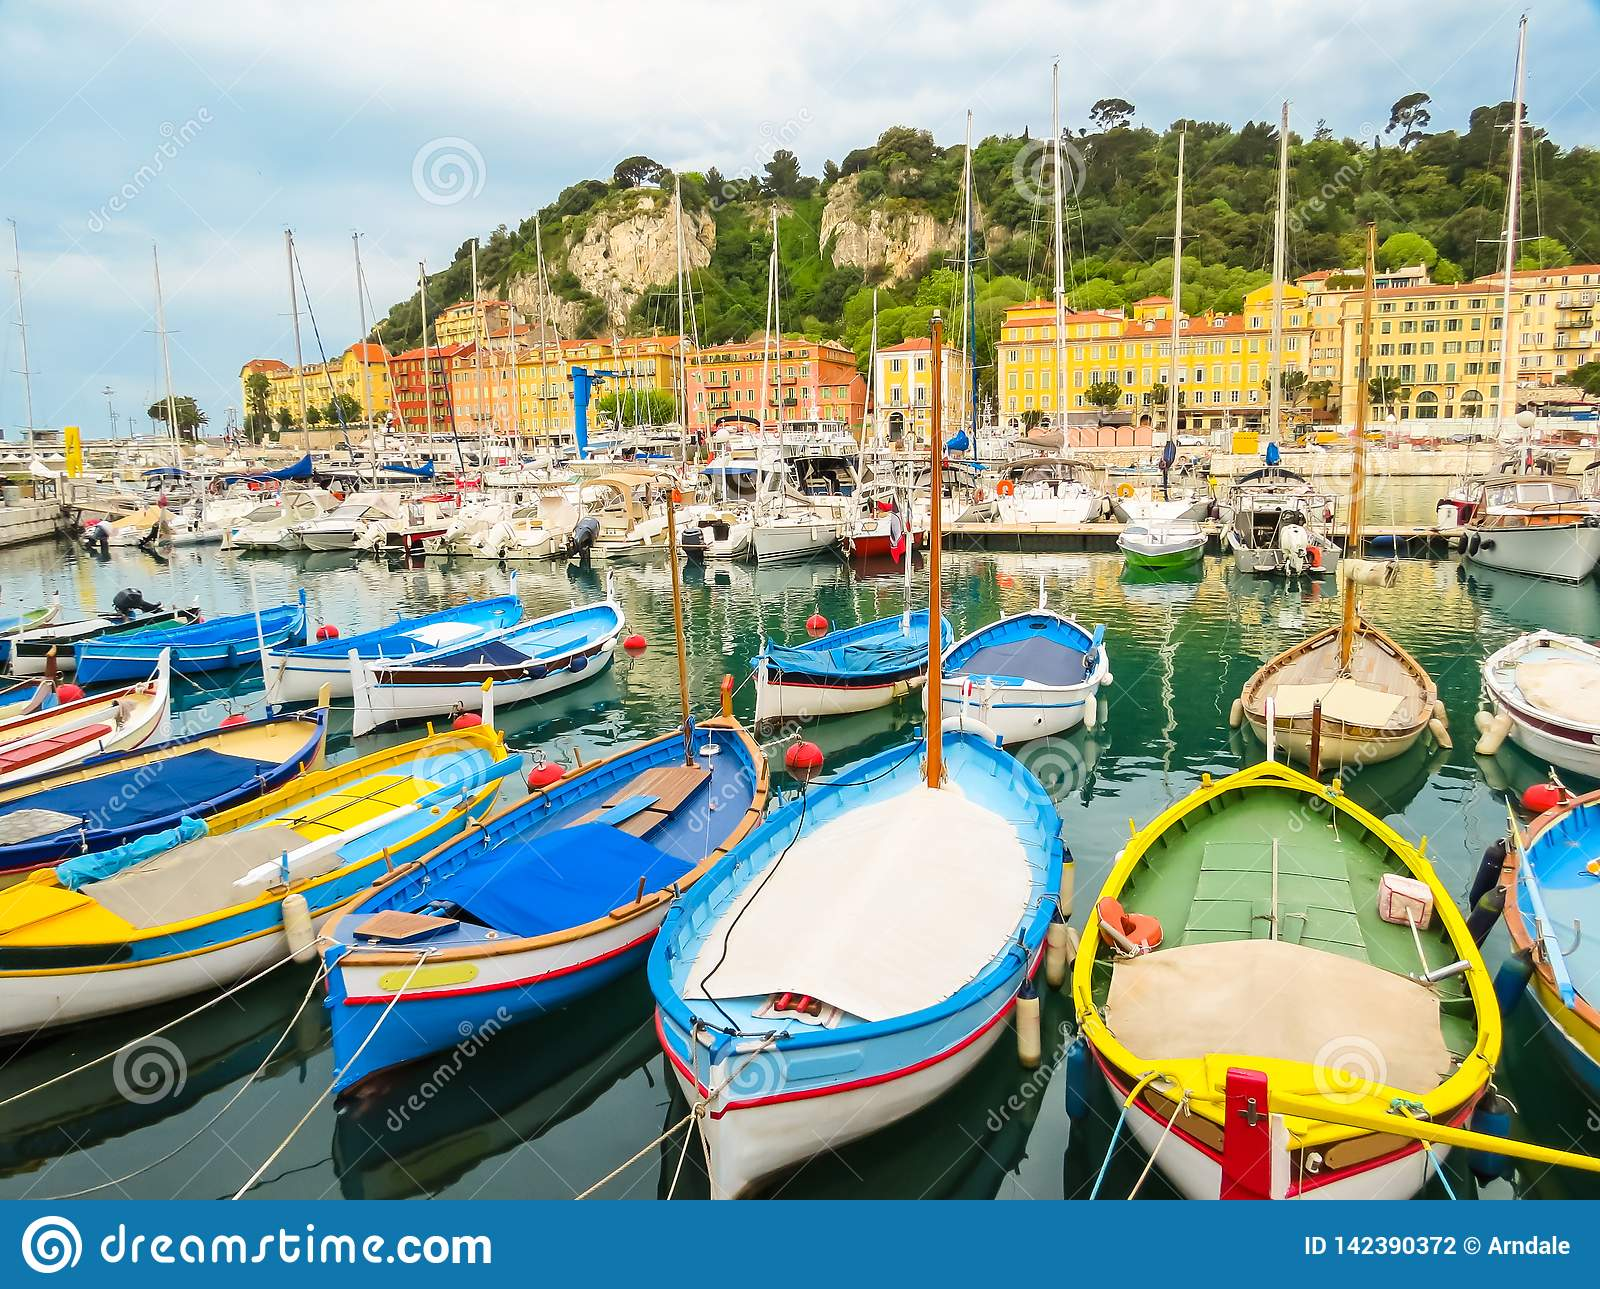 Historic port area of Nice. Fishing boats in the Port of Nice, France